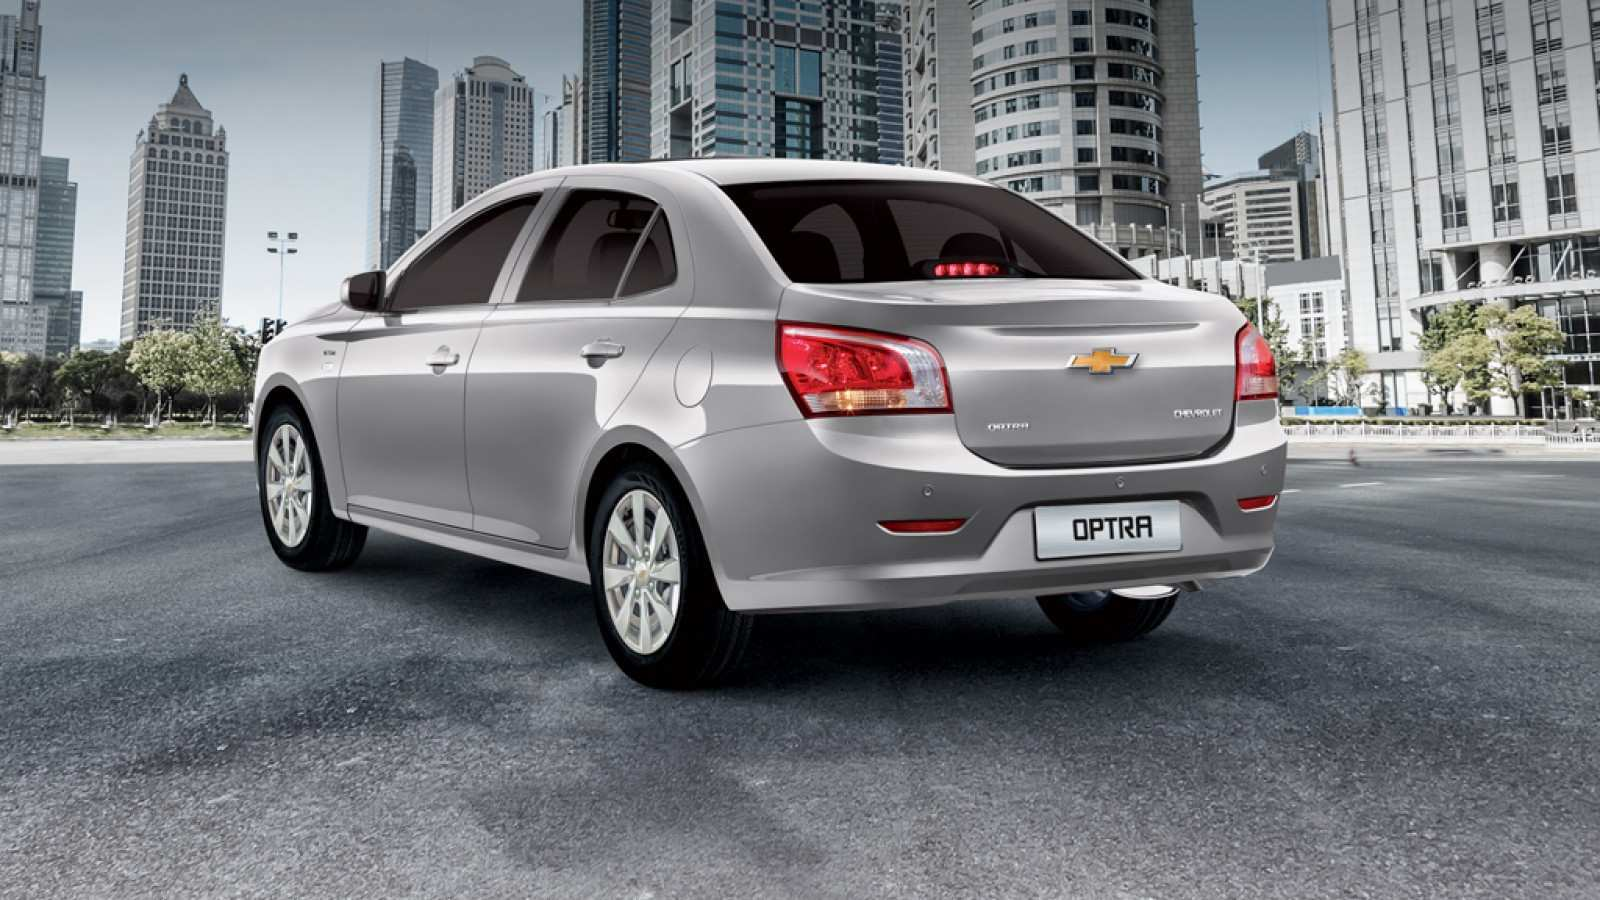 18 New Chevrolet Optra 2019 Price by Chevrolet Optra 2019